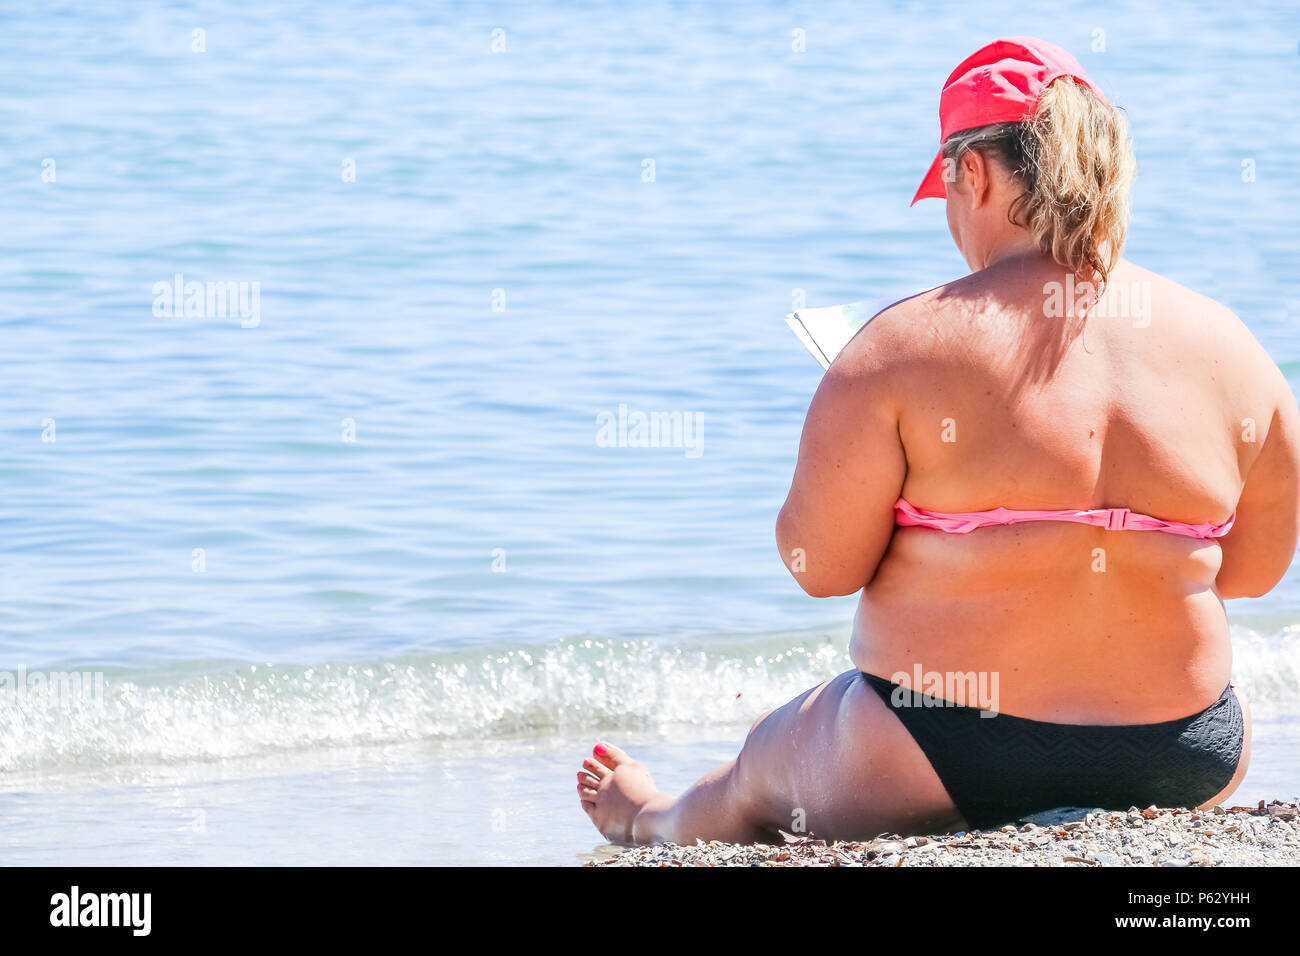 Fat ocean bbw pics due time